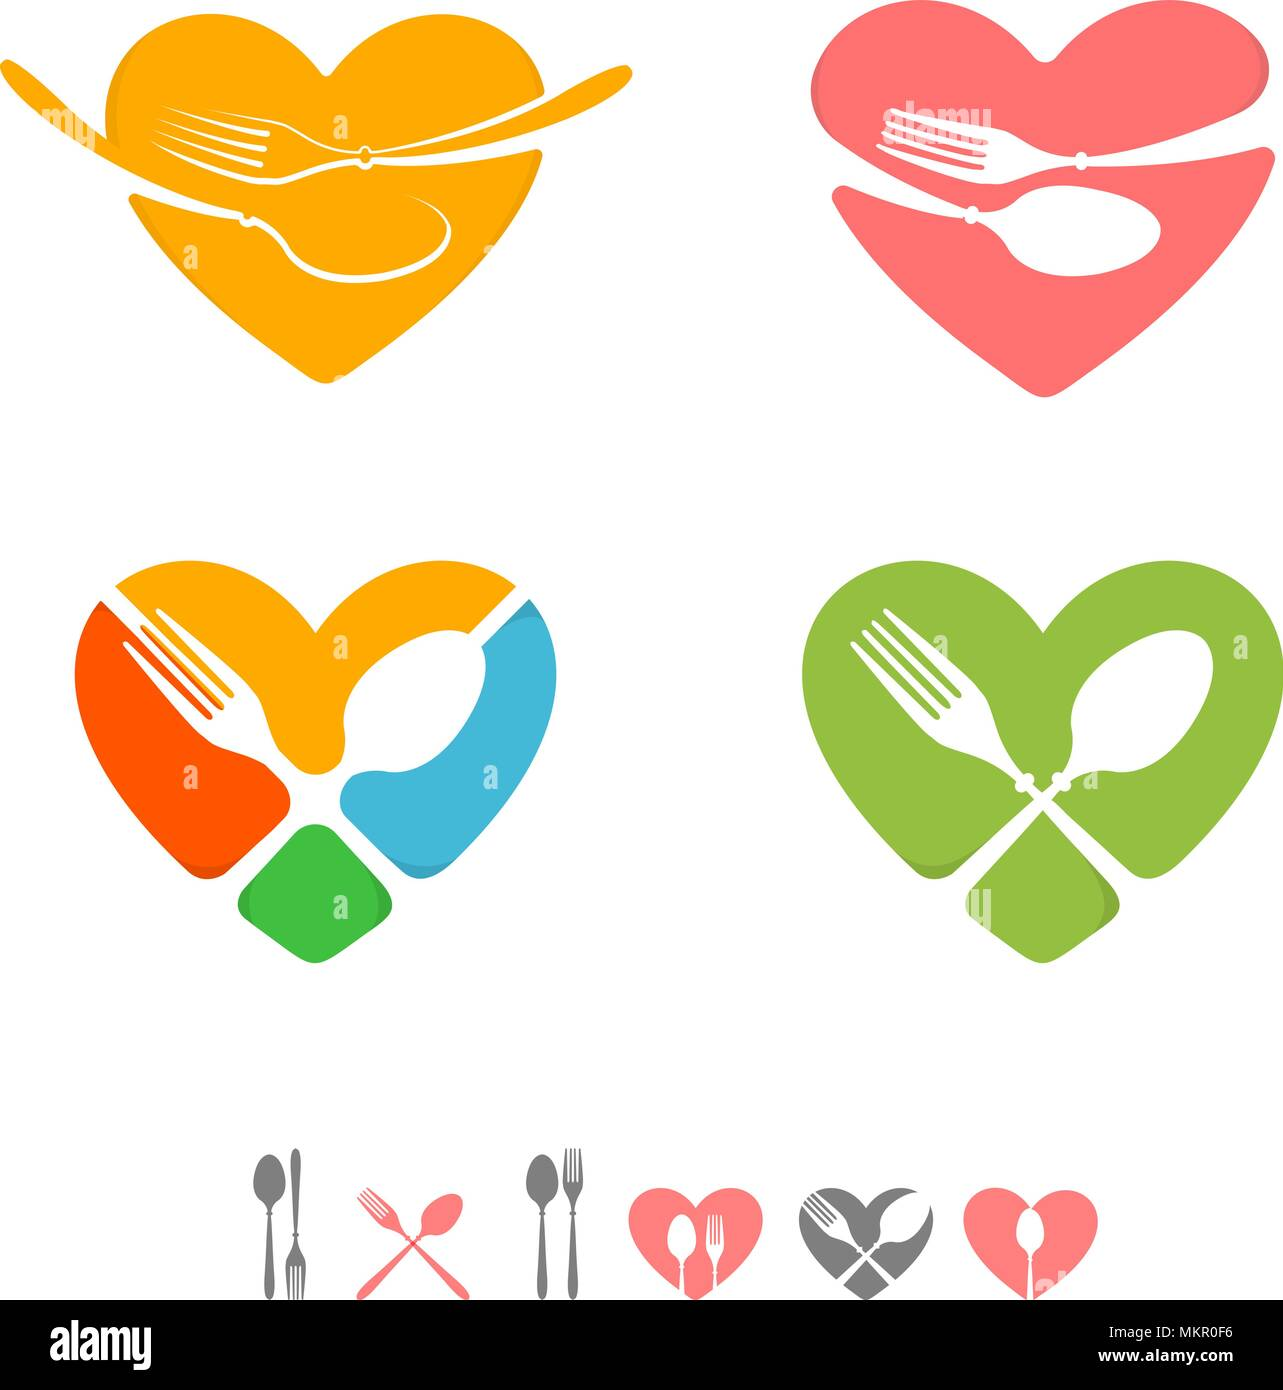 Set of vector logos for catering business restaurant emblems green set of vector logos for catering business restaurant emblems greenyellowpinkblueredgrey colors greeting card for chef table settings icons m4hsunfo